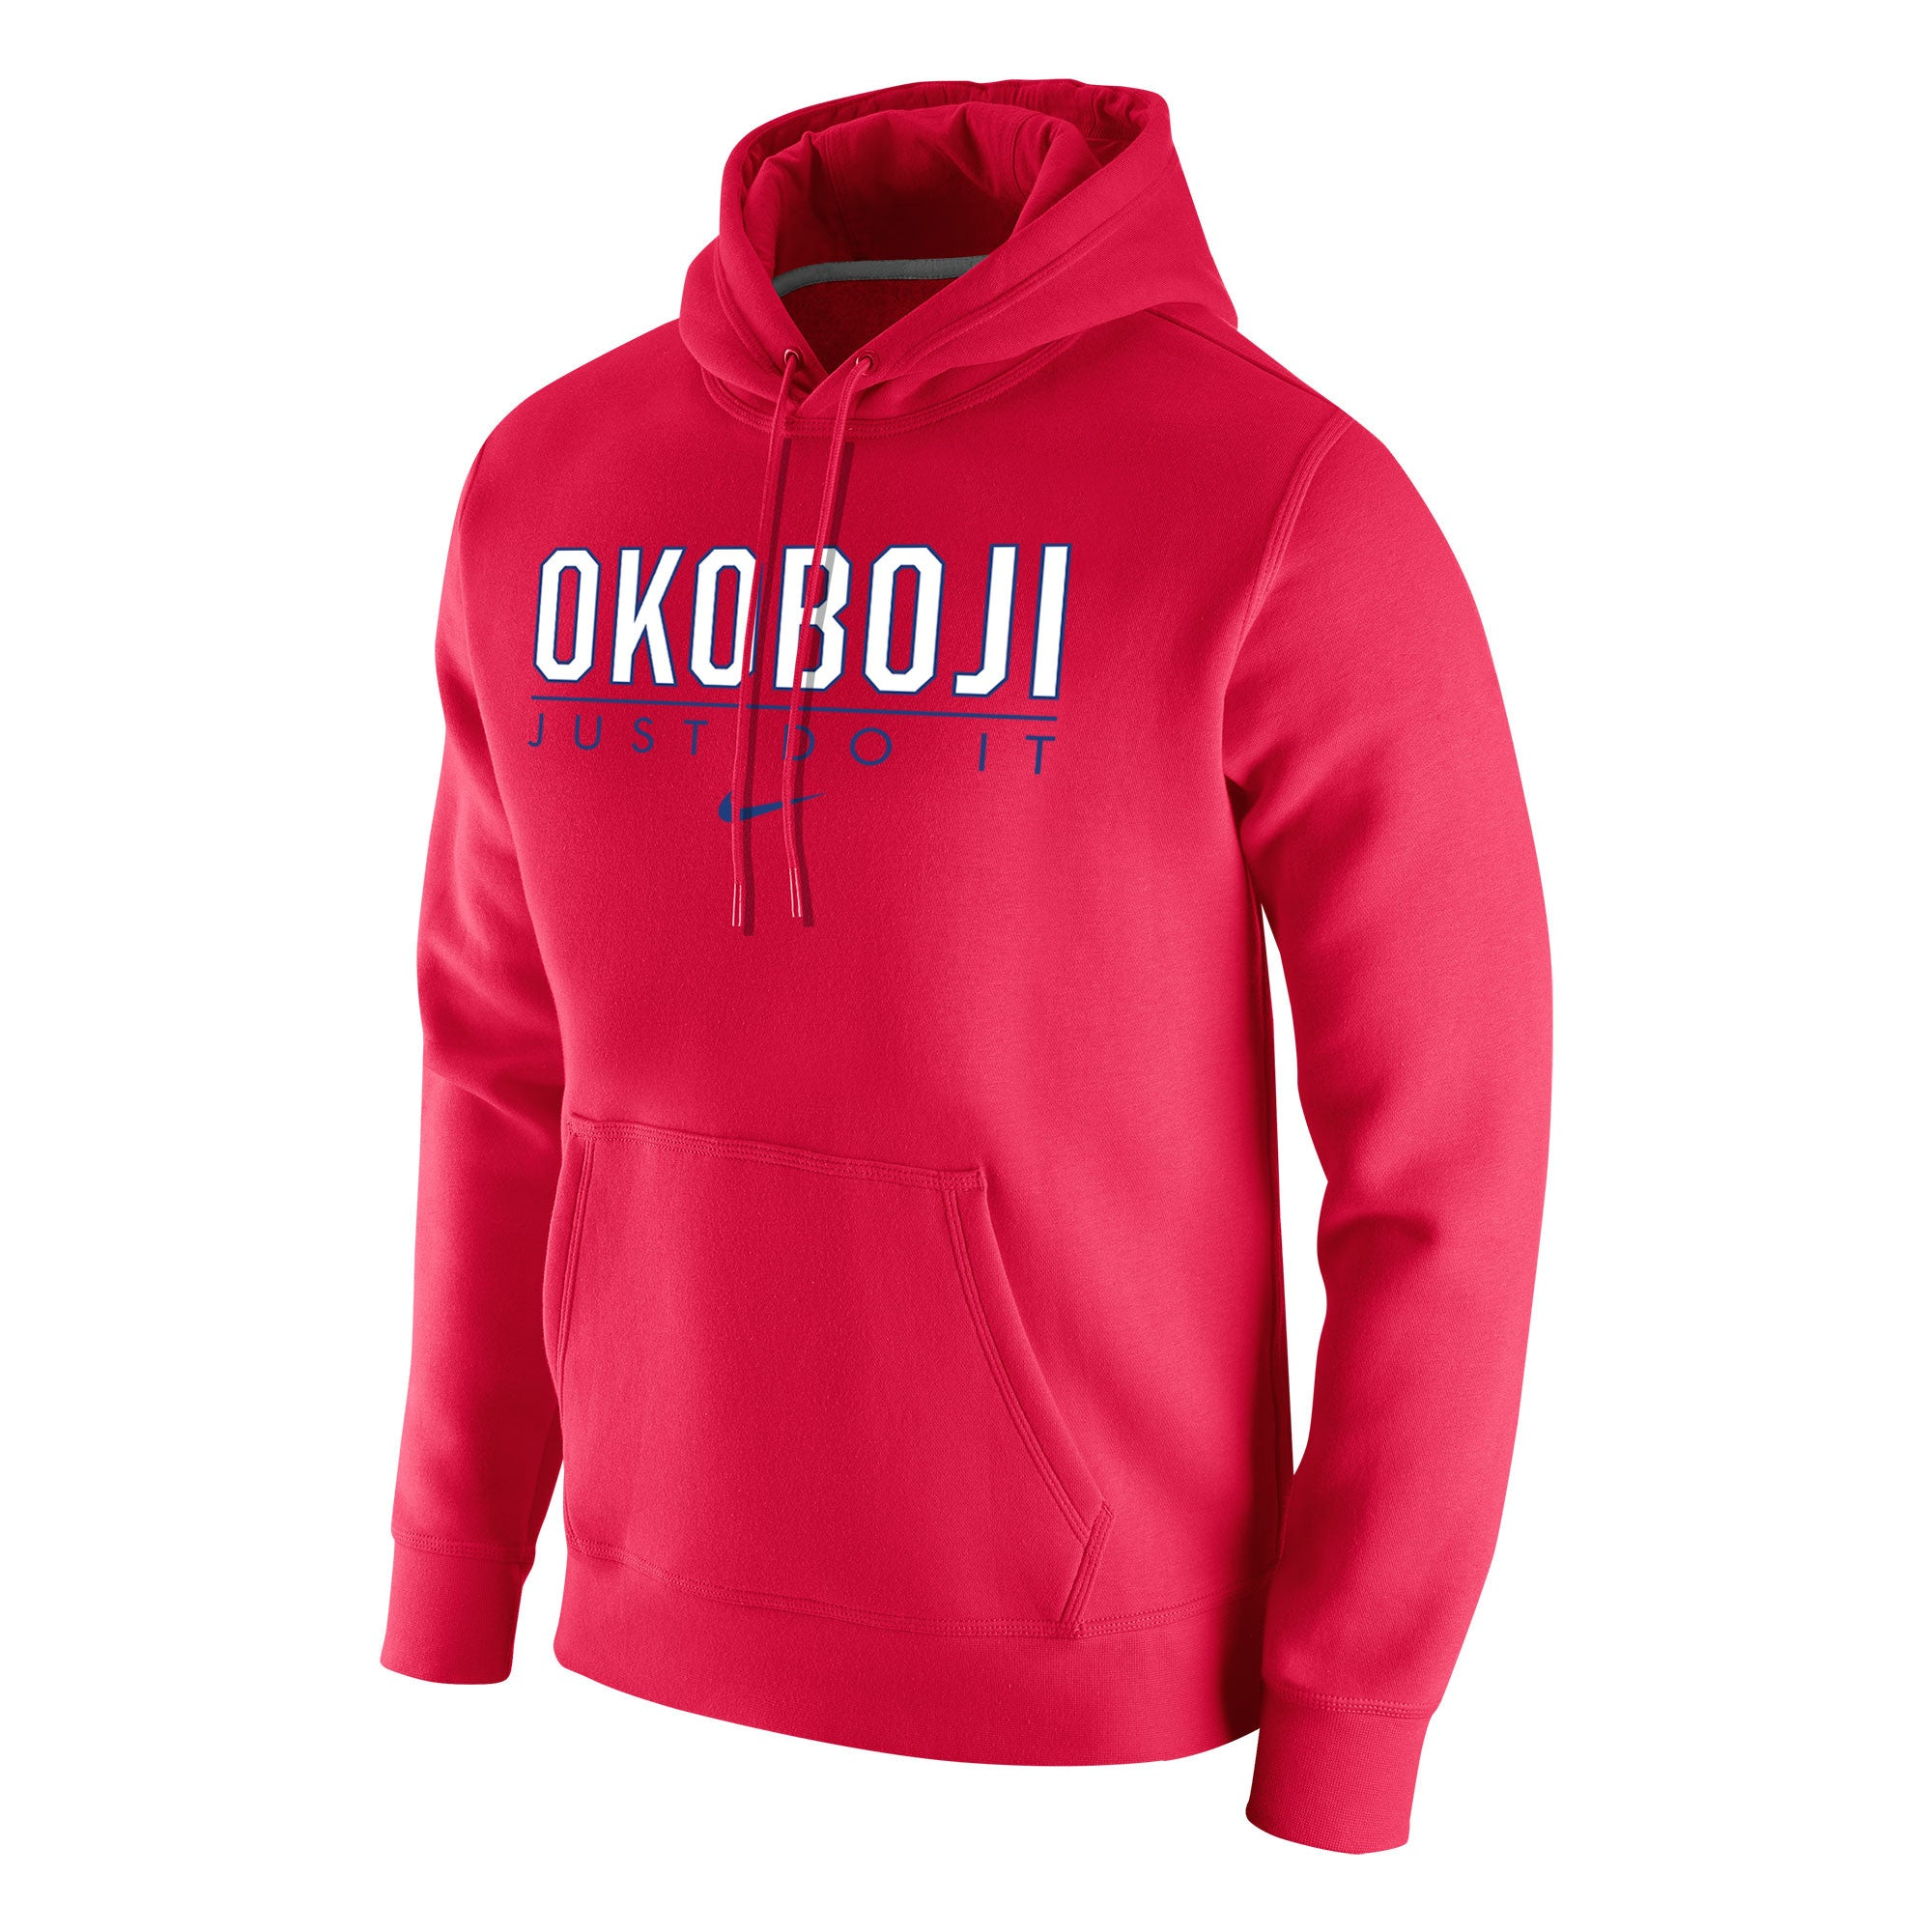 Men's Stadium Club Fleece Hoody by Nike - Red